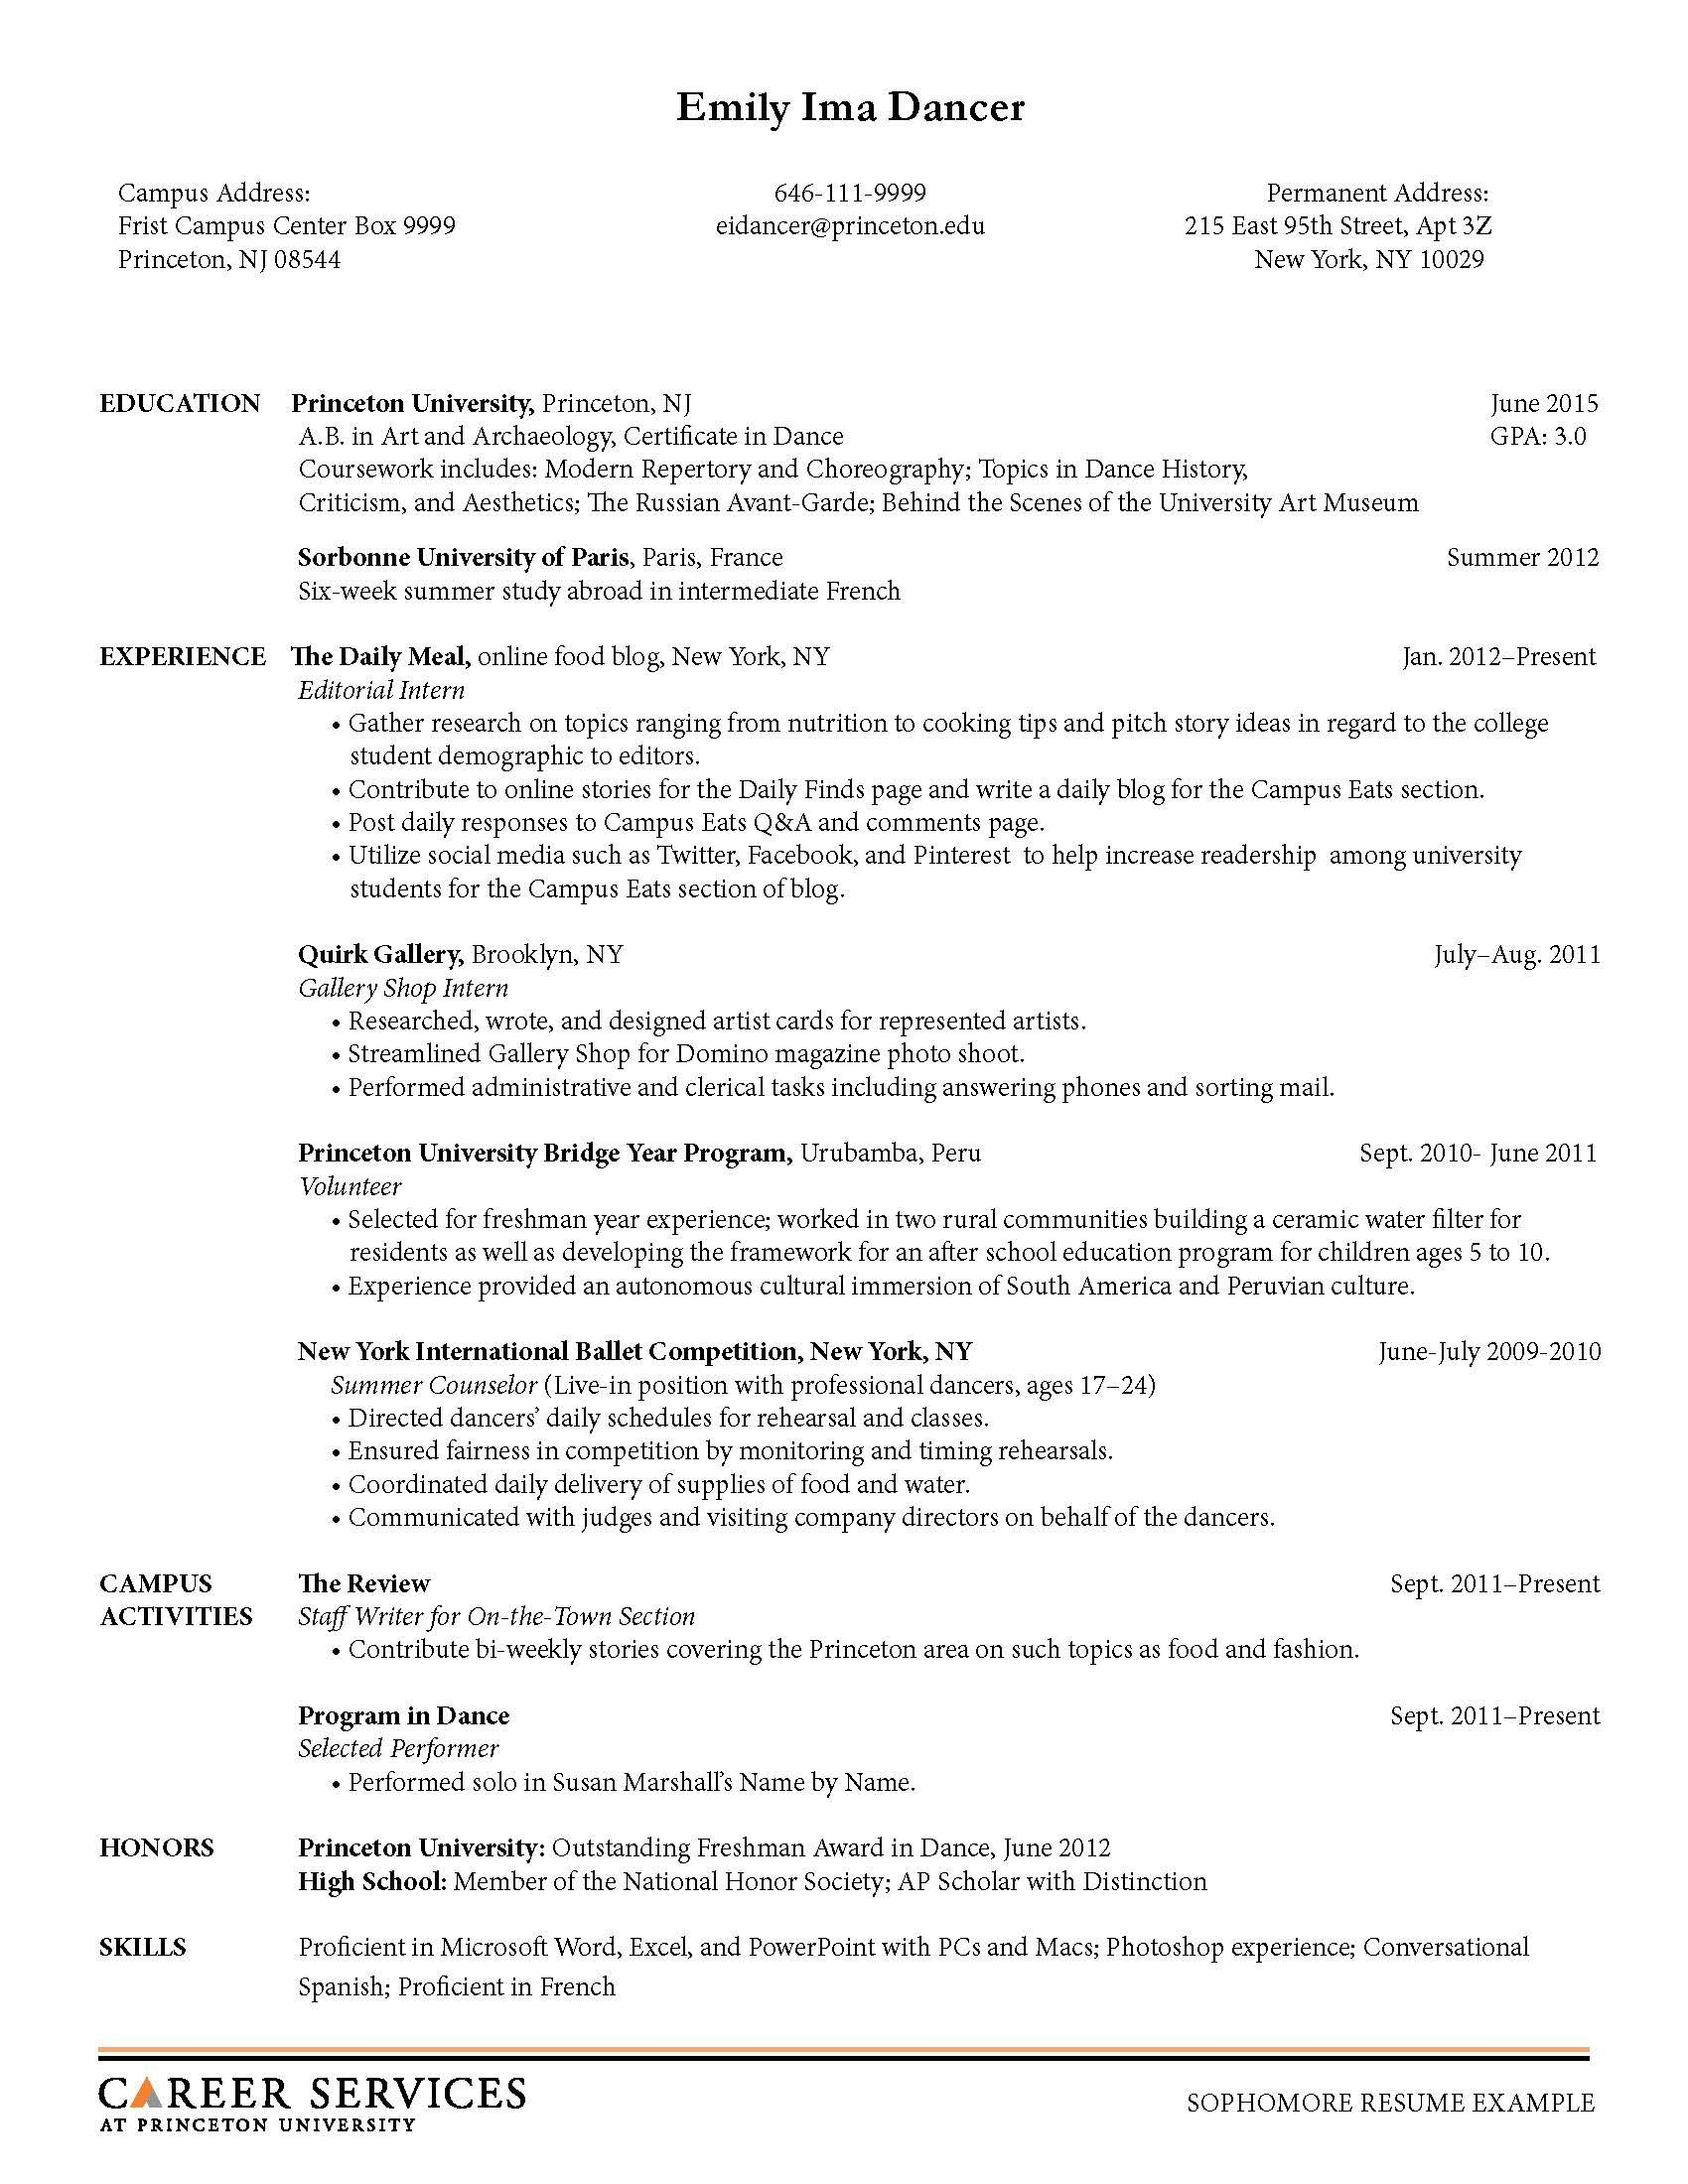 Picnictoimpeachus  Surprising Sample Resume Resume And Career On Pinterest With Excellent Resumes For Servers Besides Finance Director Resume Furthermore Targeted Resume Template With Amazing Youth Counselor Resume Also Preschool Teacher Resume Sample In Addition Entry Level Recruiter Resume And Professional Customer Service Resume As Well As Objective For Resume Internship Additionally Resume Critique Service From Pinterestcom With Picnictoimpeachus  Excellent Sample Resume Resume And Career On Pinterest With Amazing Resumes For Servers Besides Finance Director Resume Furthermore Targeted Resume Template And Surprising Youth Counselor Resume Also Preschool Teacher Resume Sample In Addition Entry Level Recruiter Resume From Pinterestcom